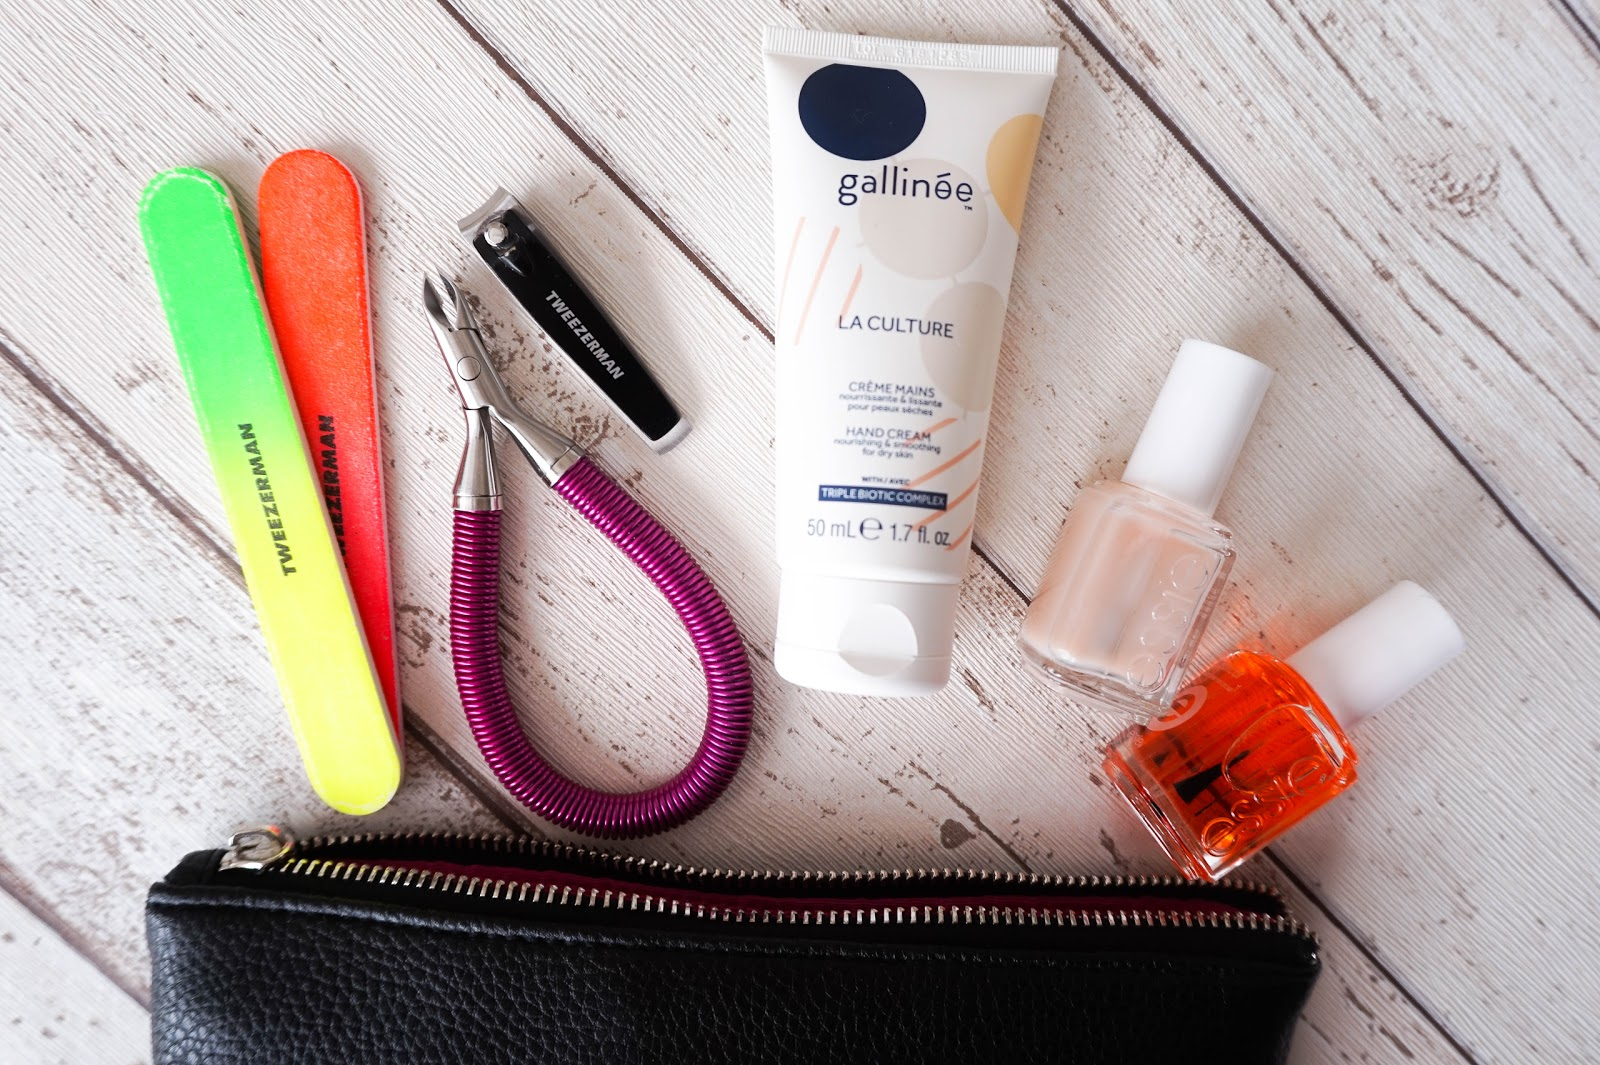 Manicure Essentials, Tweezerman, Essie, Gallinee